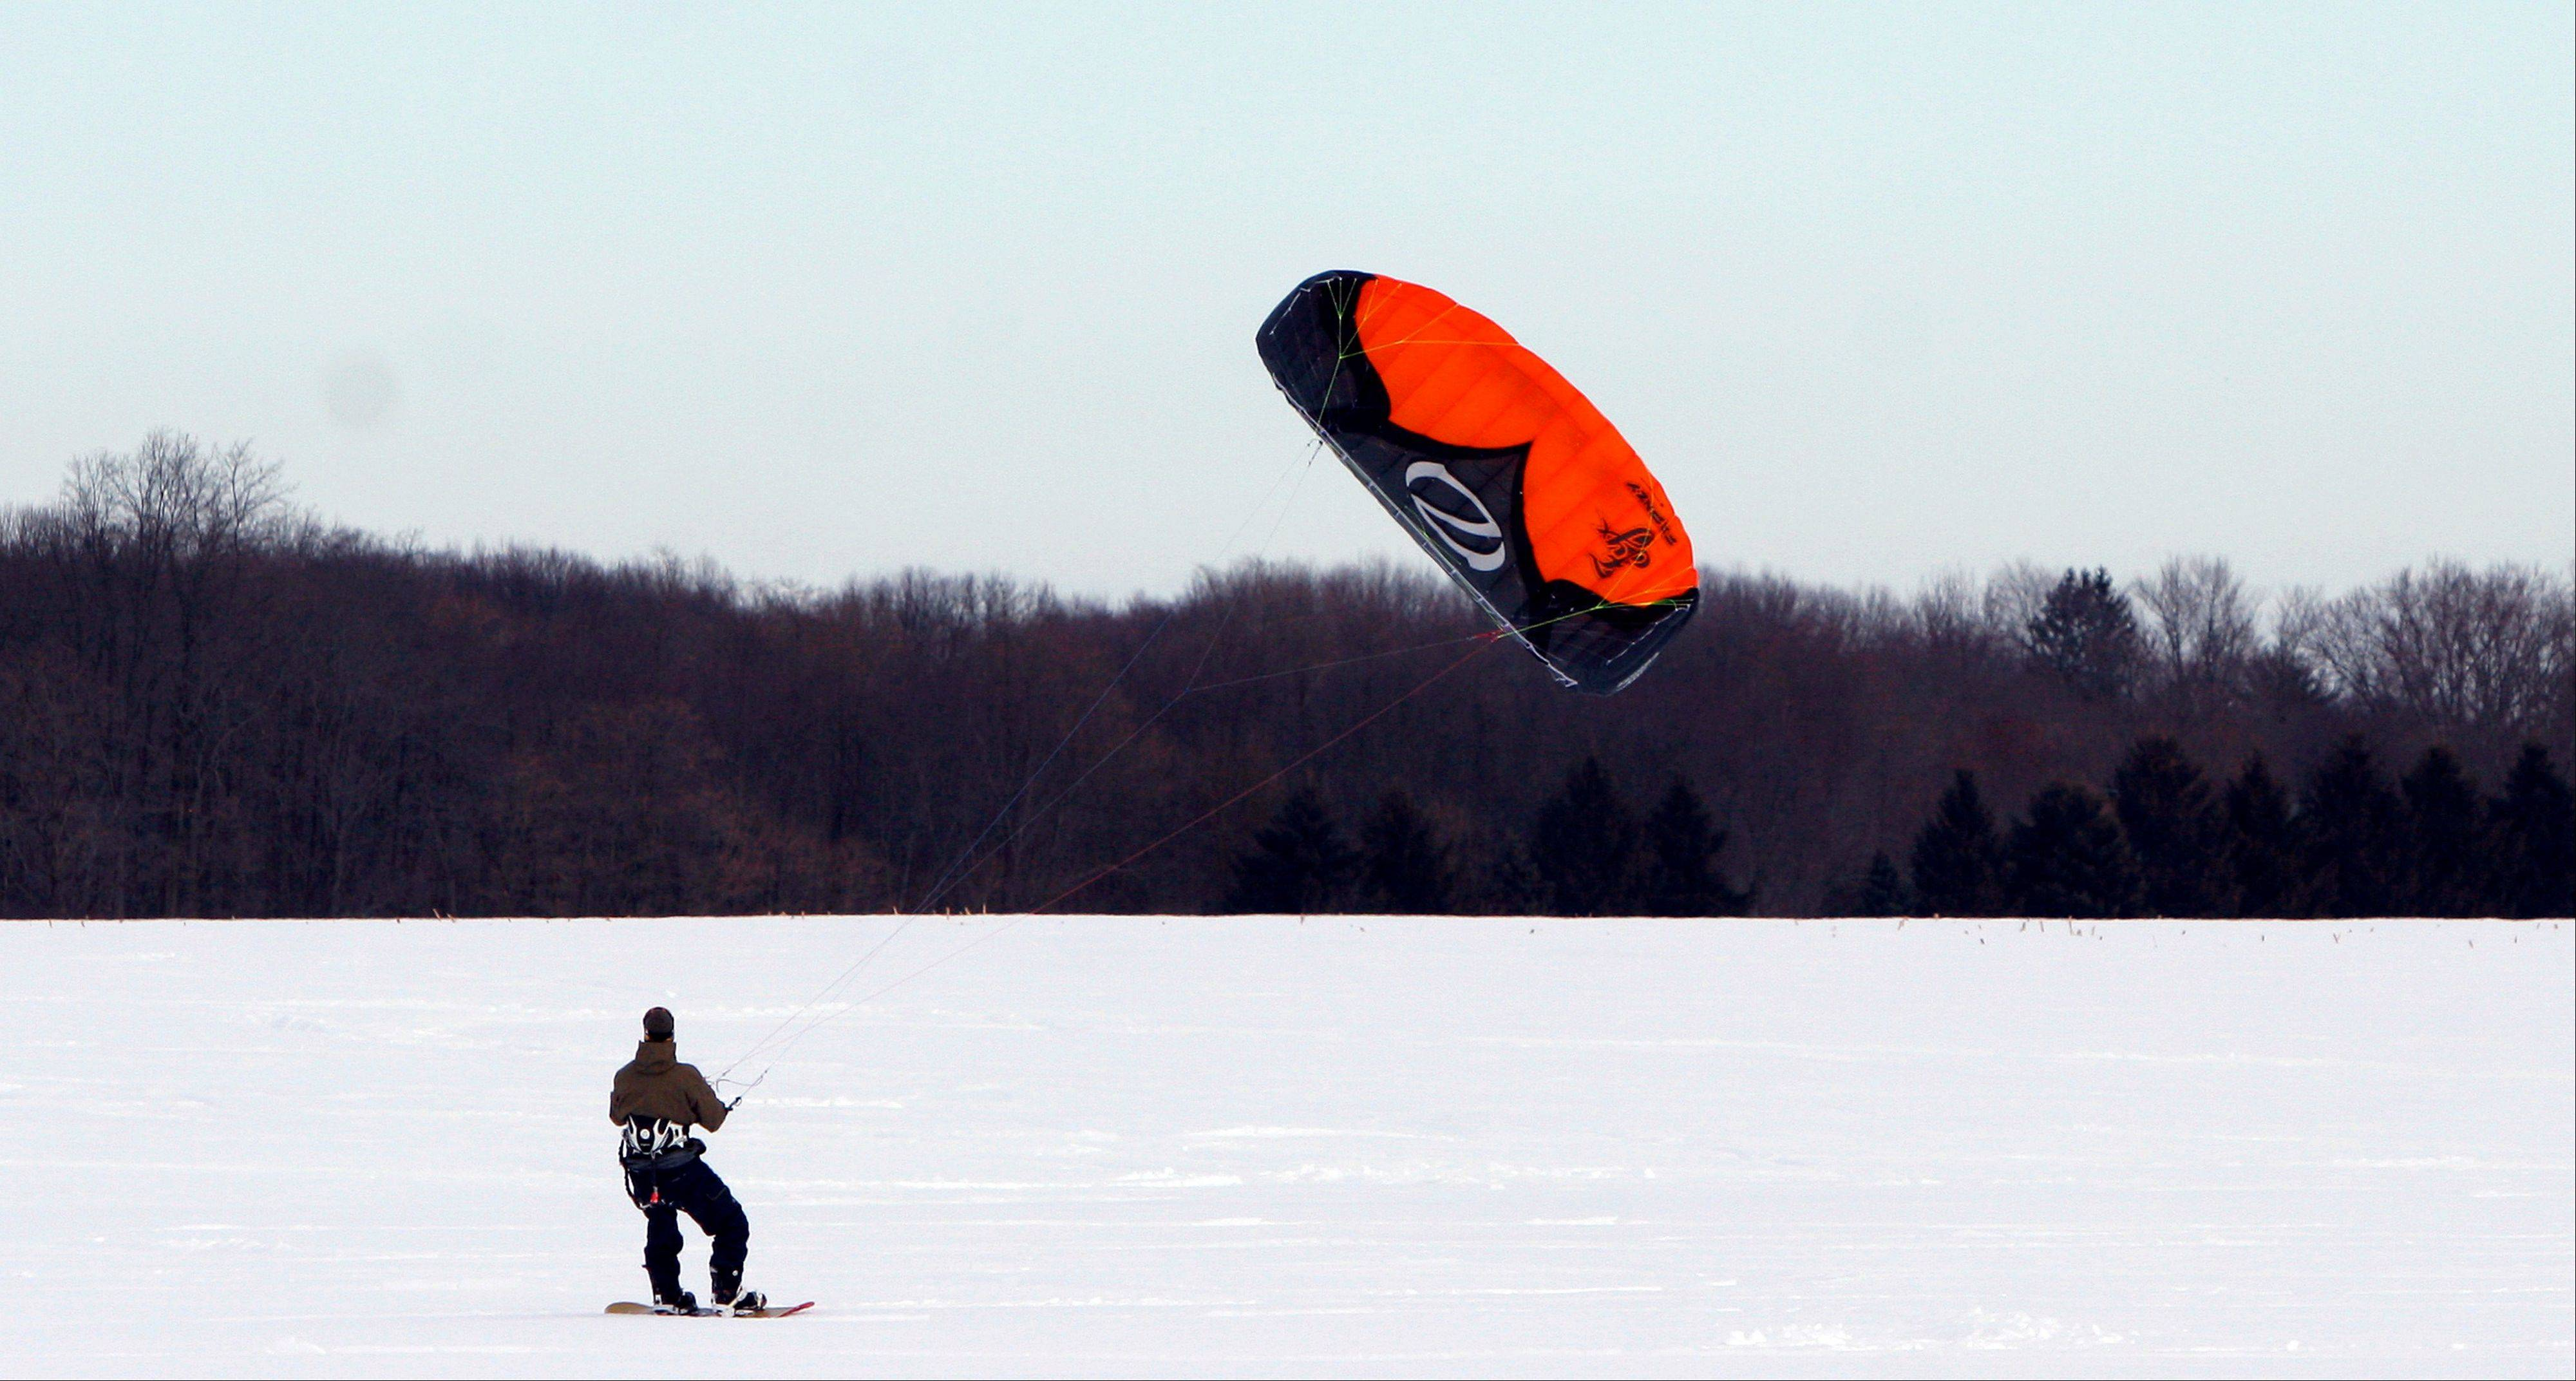 John O'Malley, from Westchester County, N.Y, snowkites across an open field in Cranbury, N.J.